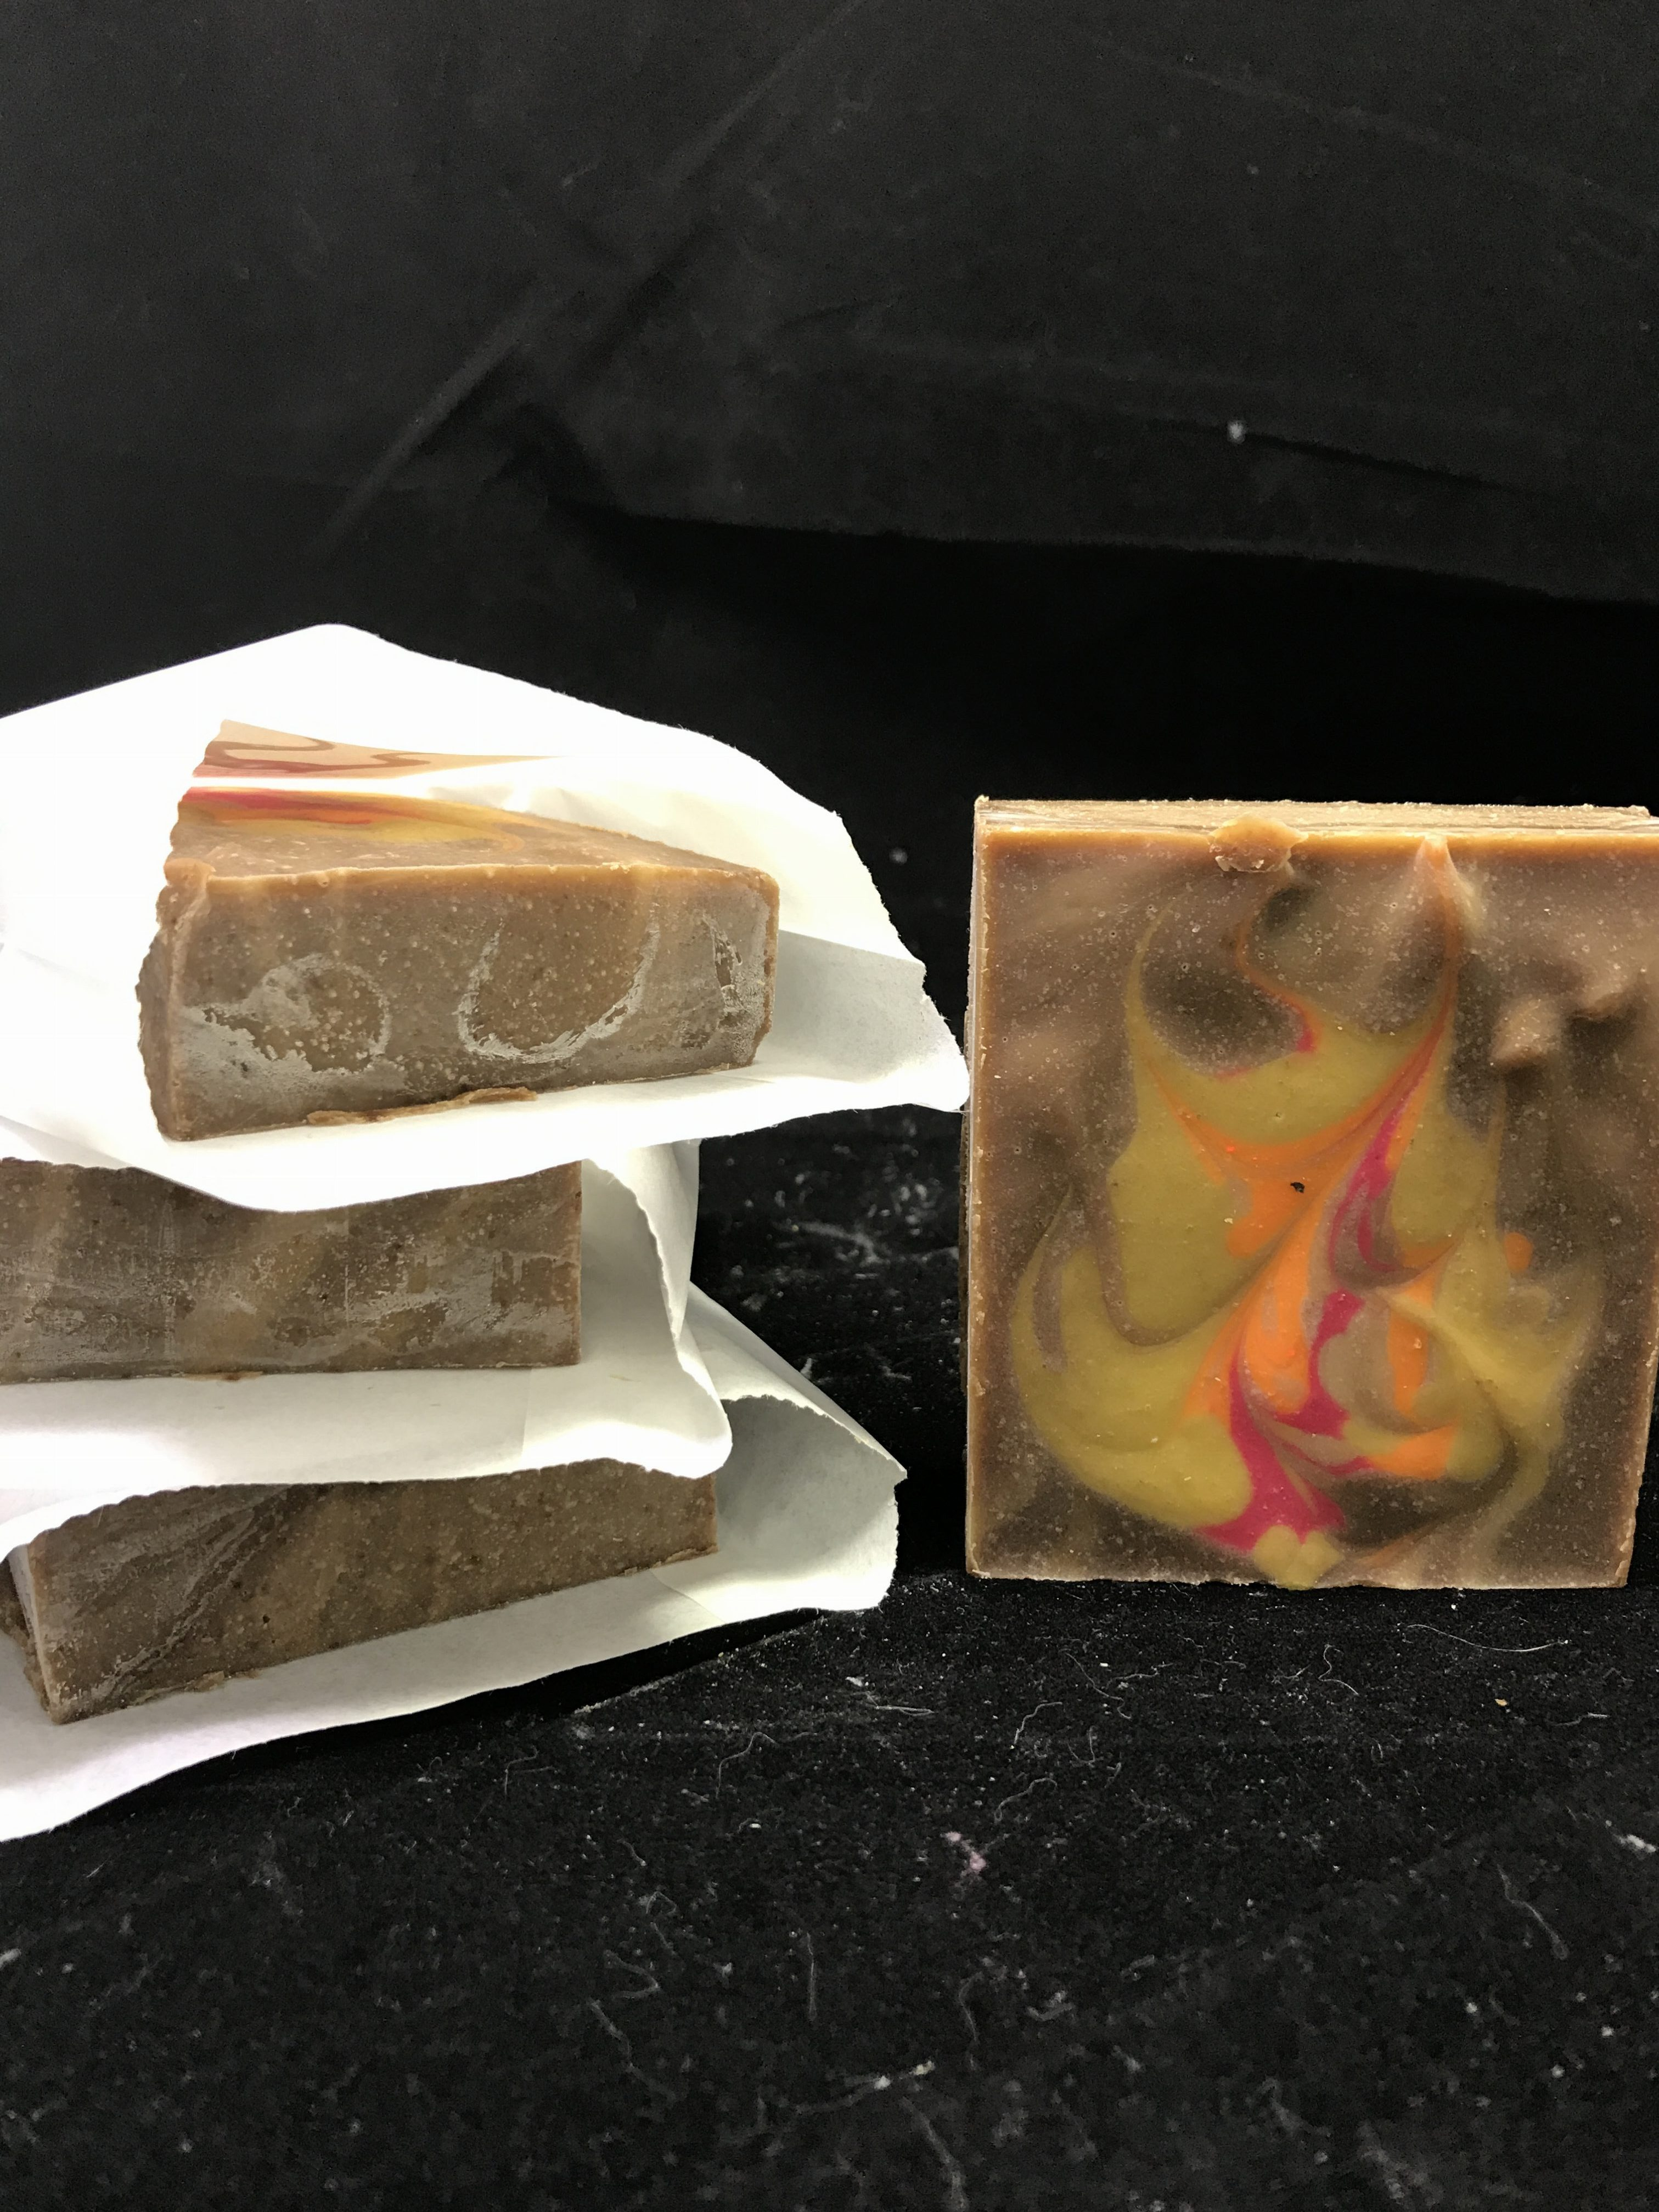 maleficent themed soap with goat milk